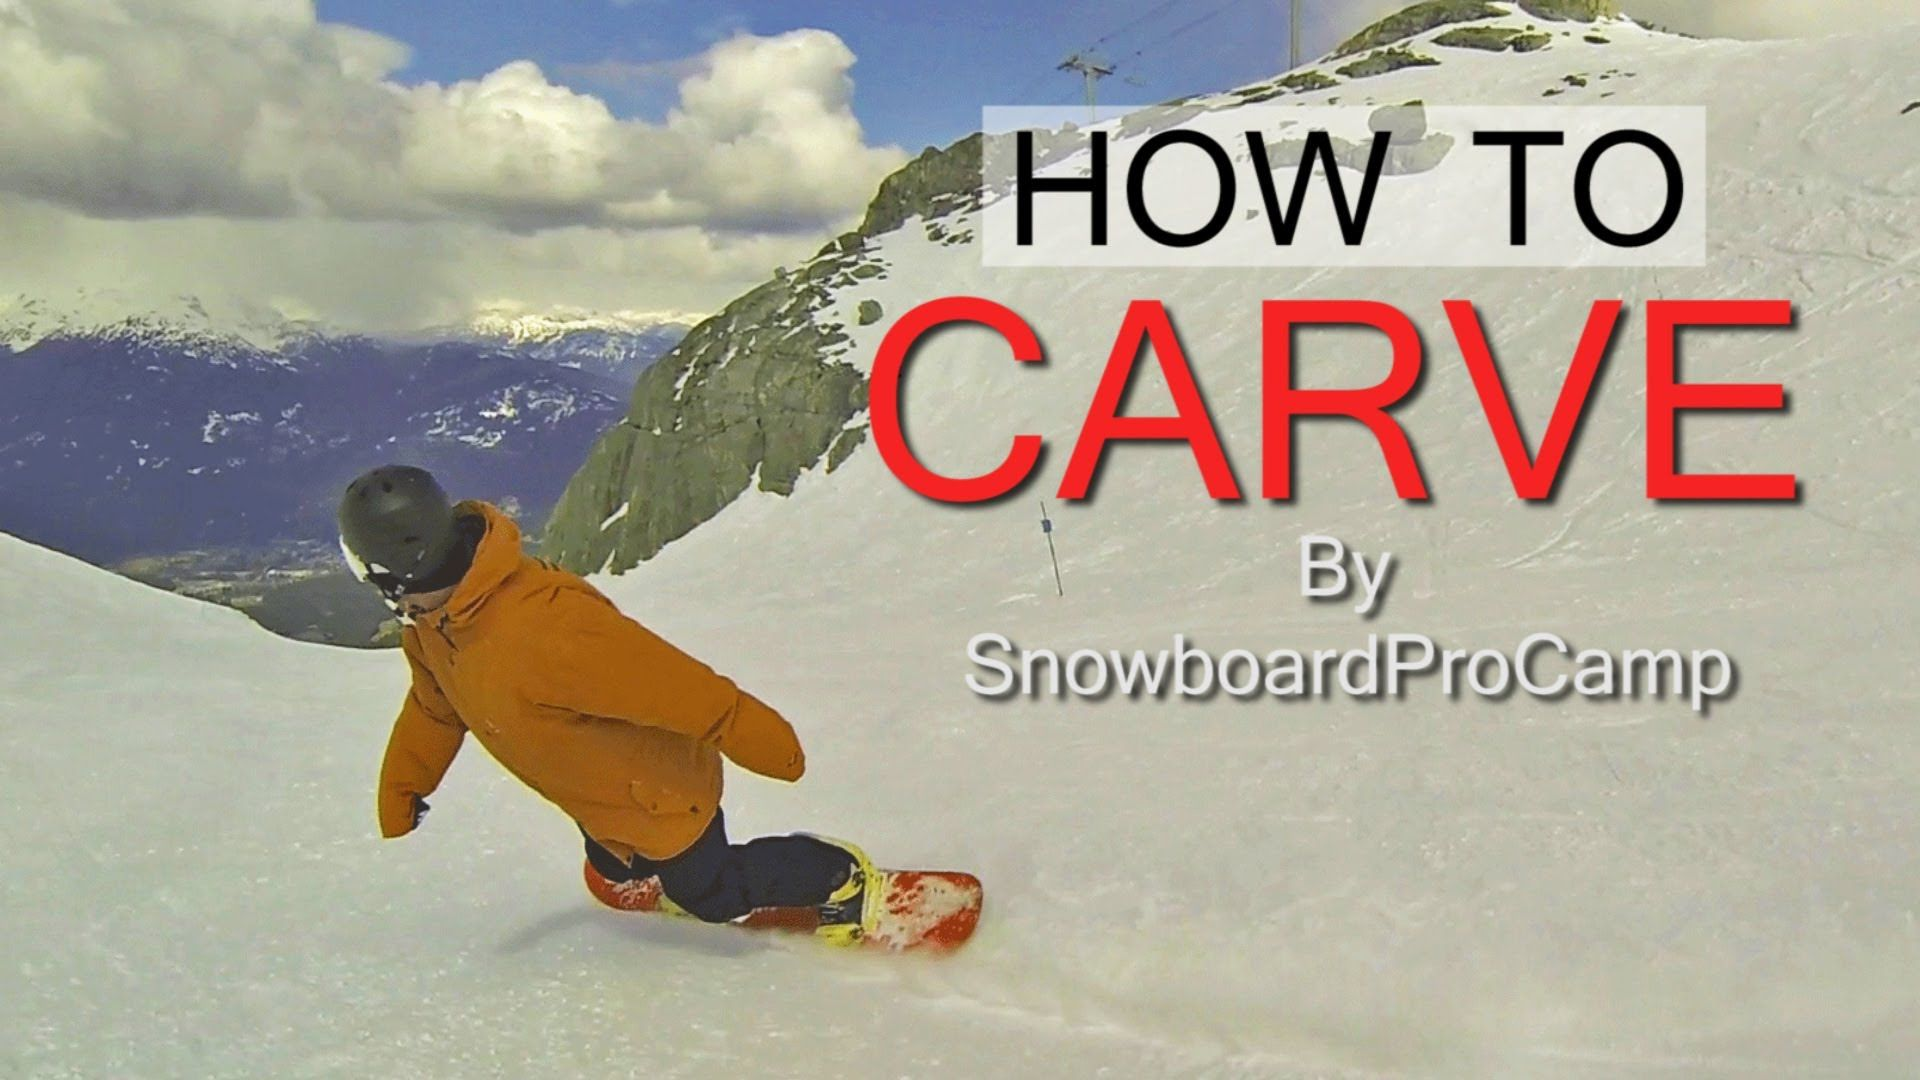 How To Carve On A Snowboard How To Snowboard Snowboard Snowboarding Snowboarding Tips